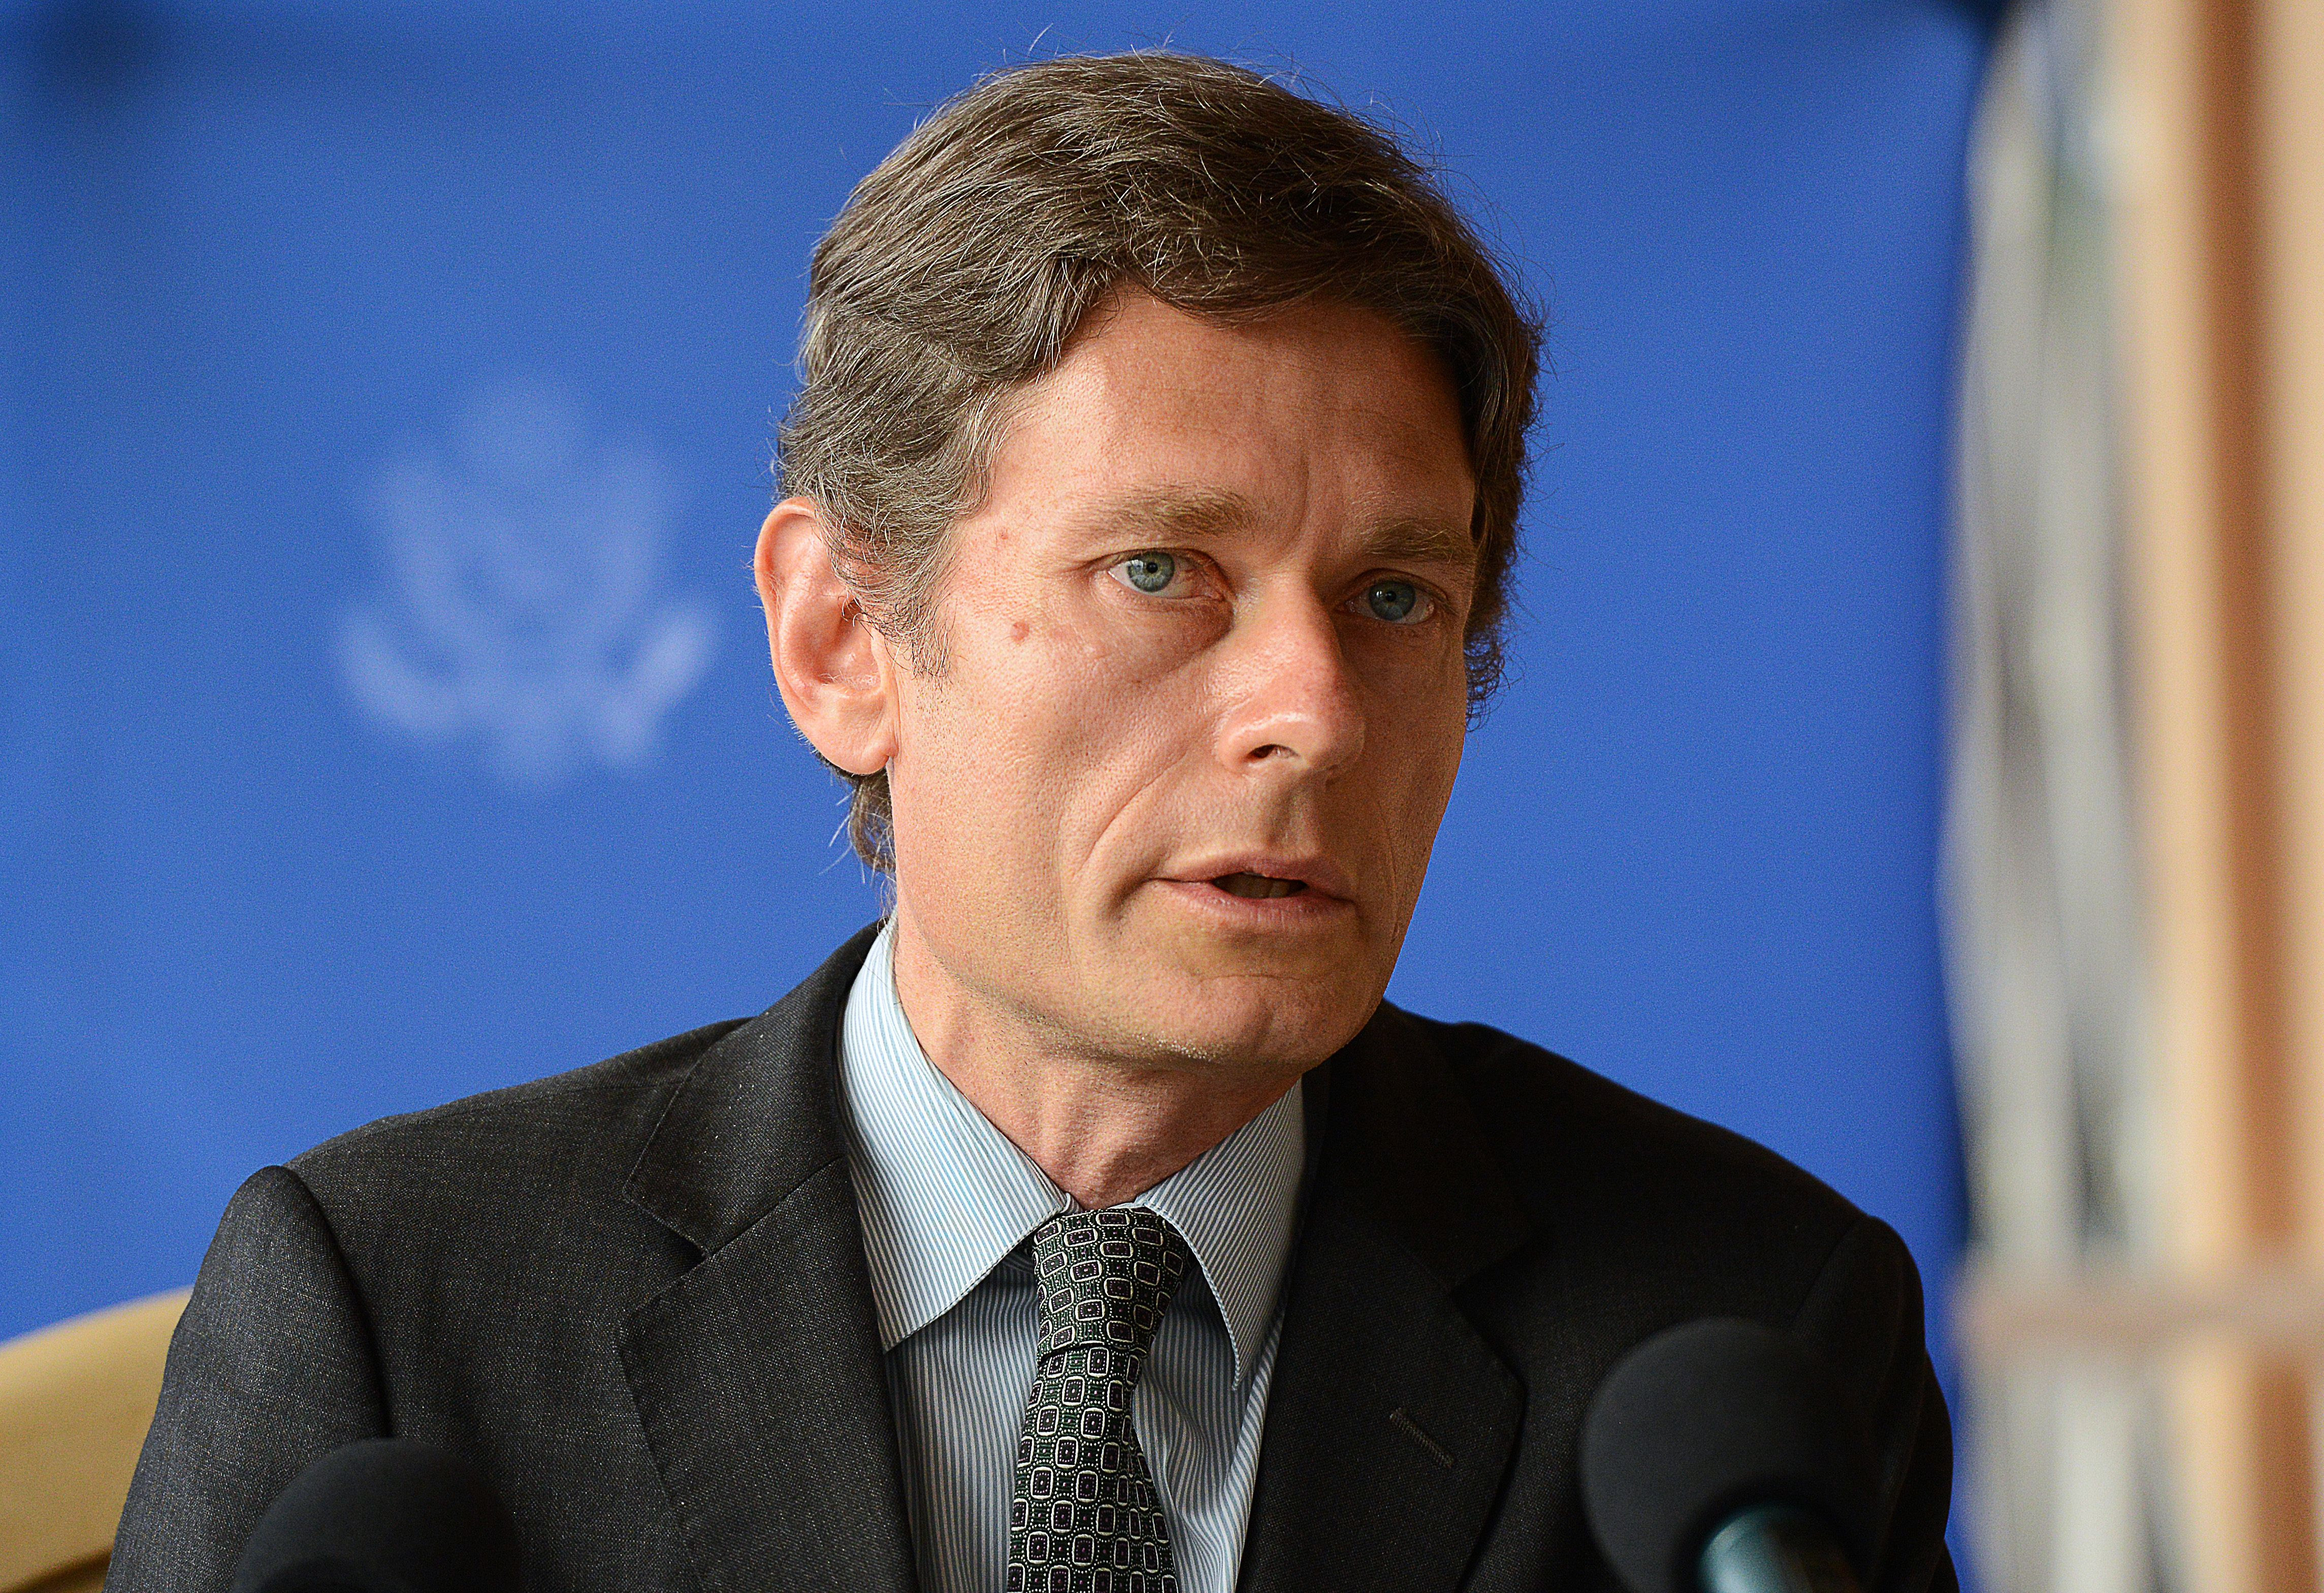 US Assistant Secretary of State for Democracy, Human Rights and Labor Tom Malinowski speaks during a press conference on April 30, 2015 in Bujumbura. Malinowski arrived in Burundi on April 29 for talks with officials amid deadly demonstrations against President Pierre Nkurunziza's bid for a third term. At least nine protestors were hurt in Bujumbura on April 30 in renewed clashes, the Red Cross said, confirming that the overall death toll from days of violent protests now stands at six dead. (SIMON MAINA/AFP/Getty Images)